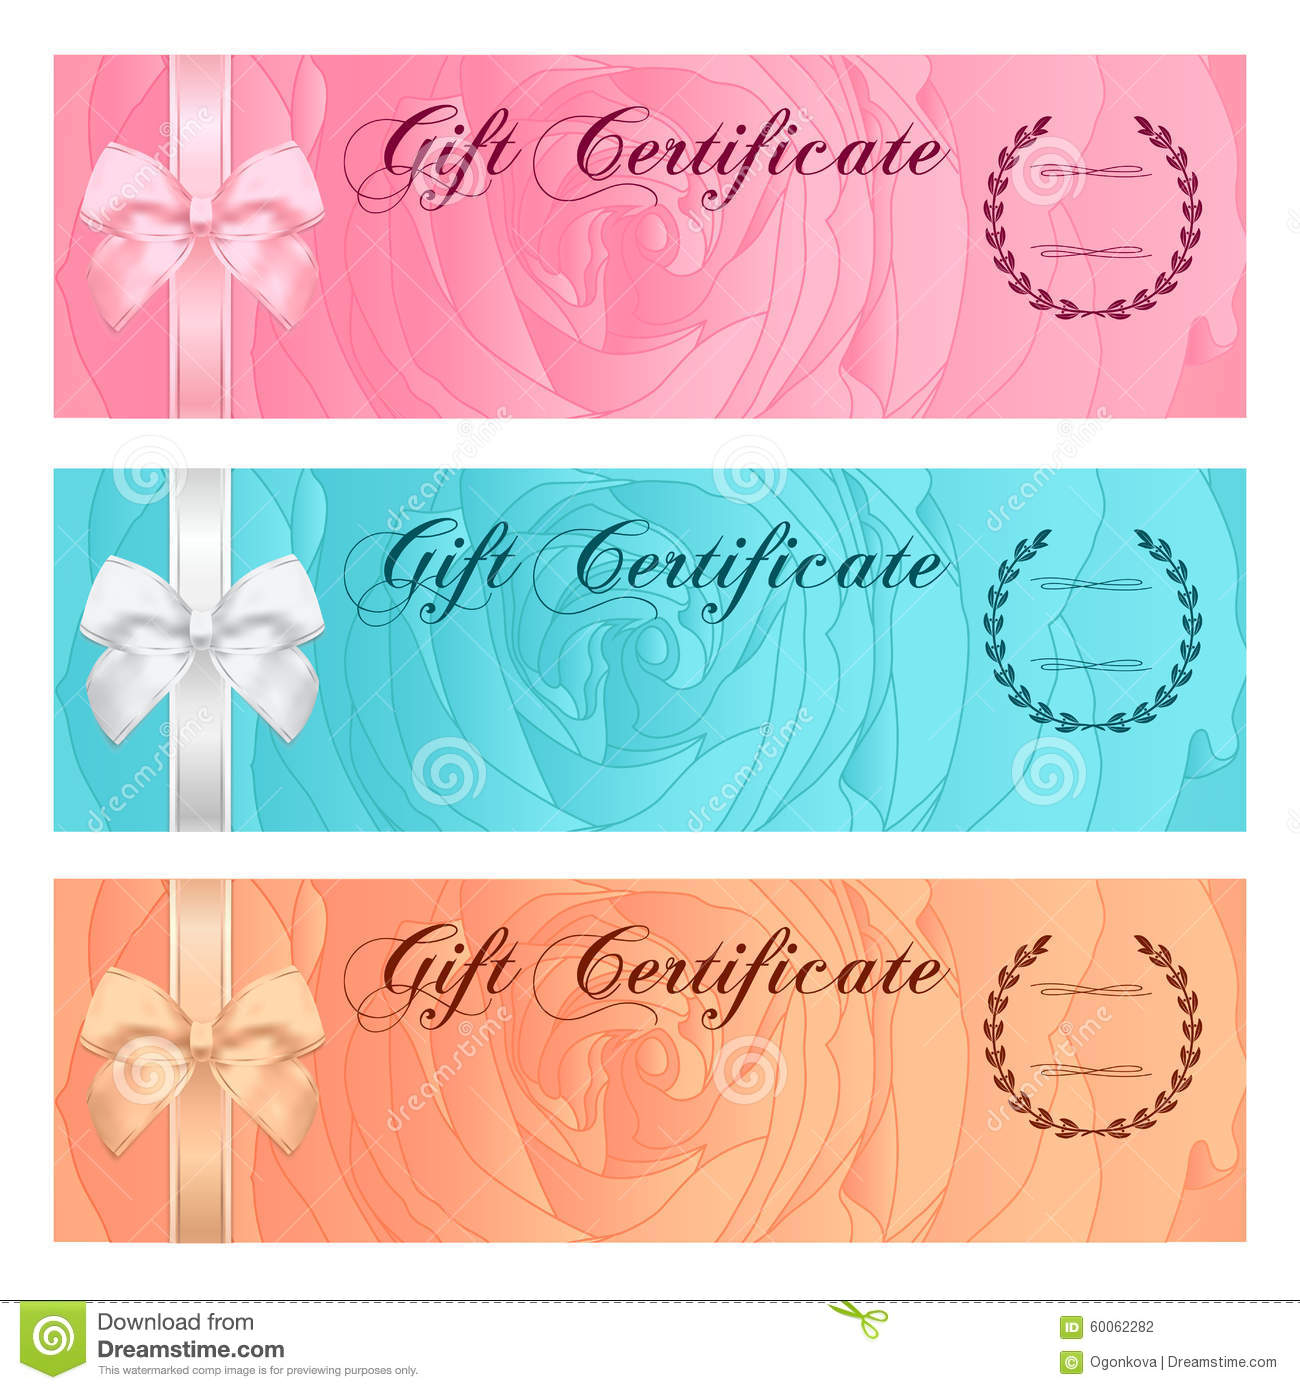 Voucher Gift Certificate Coupon Template Rose Royalty Free – Gift Coupon Template